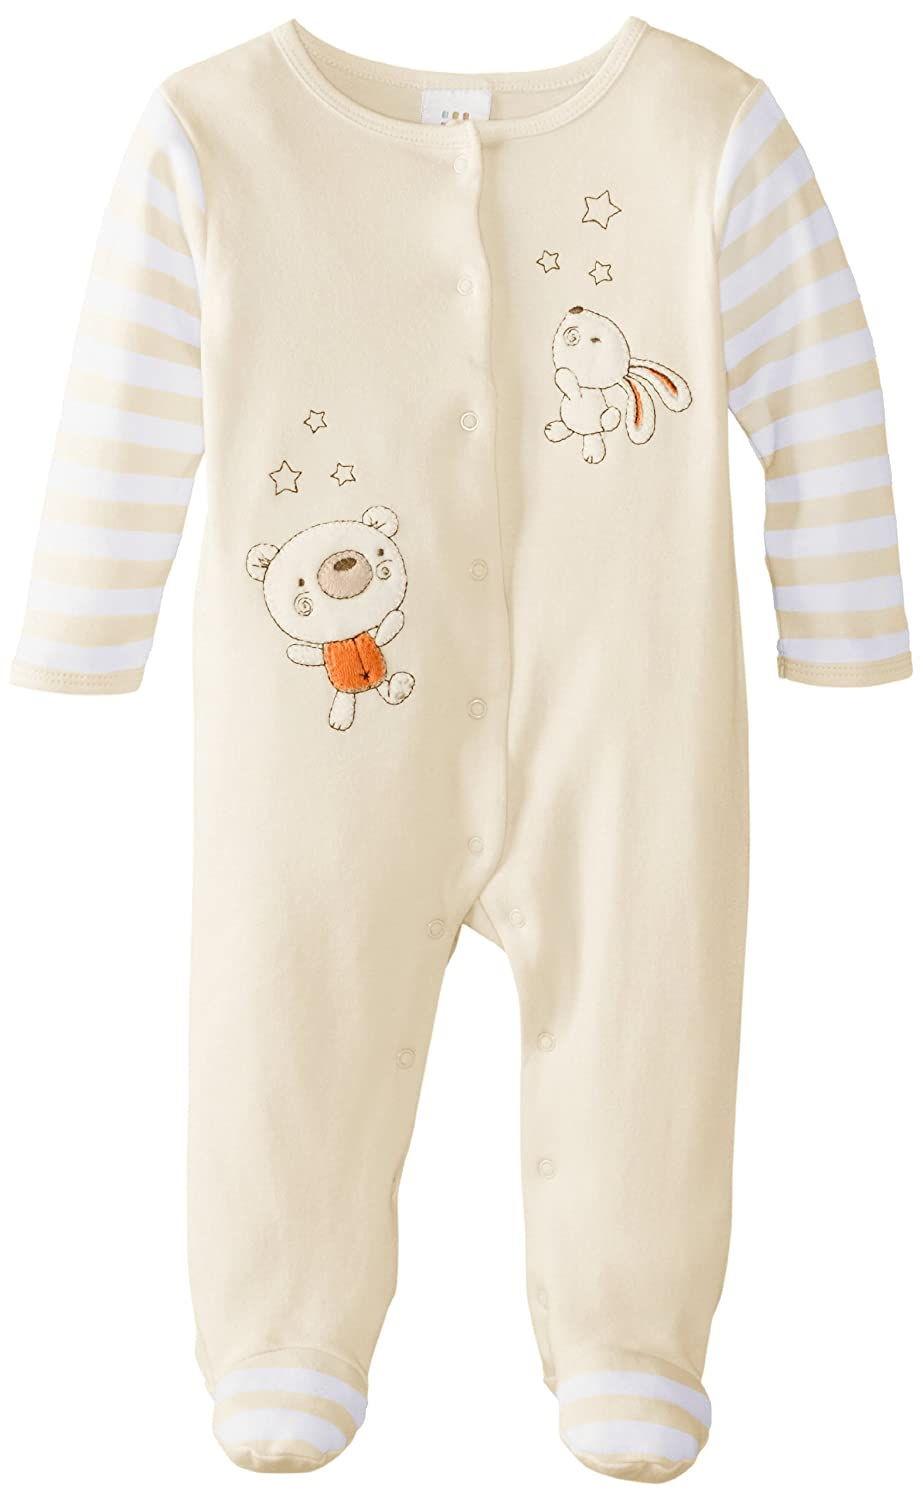 415ad6e9973d Amazon.com  Disney Baby Newborn Neutral Bear Footie